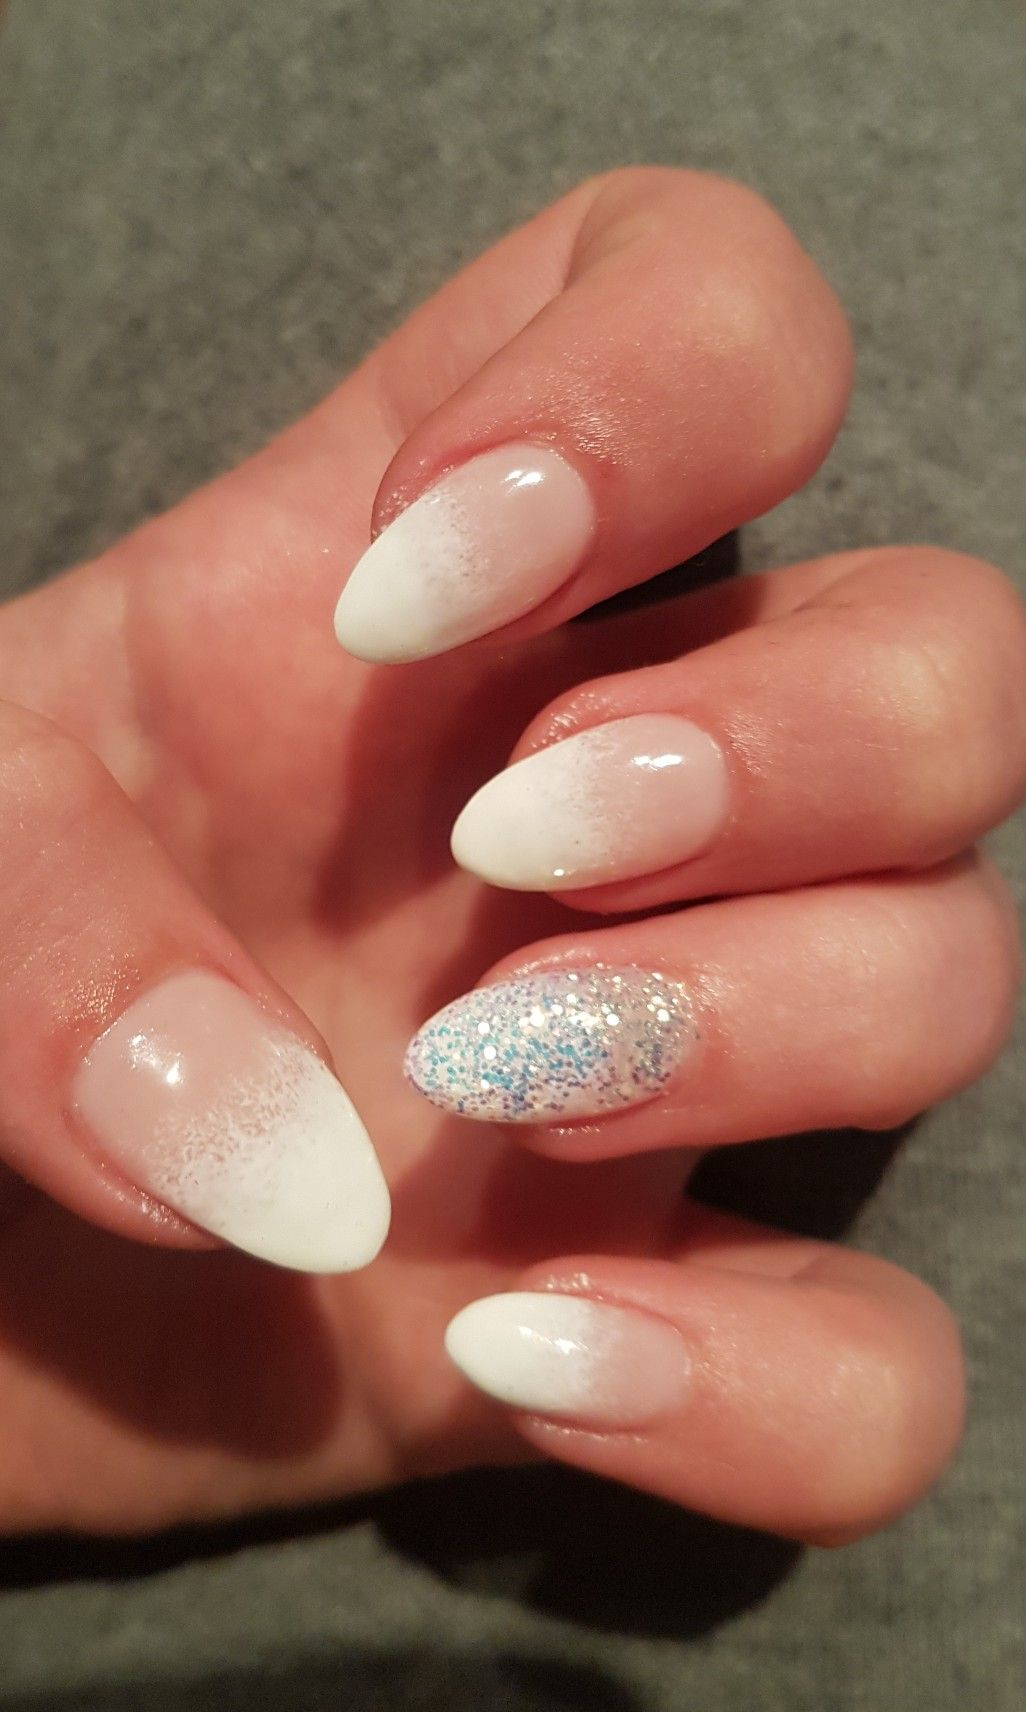 pics Daily Inspiration: The Reinvented FrenchManicure